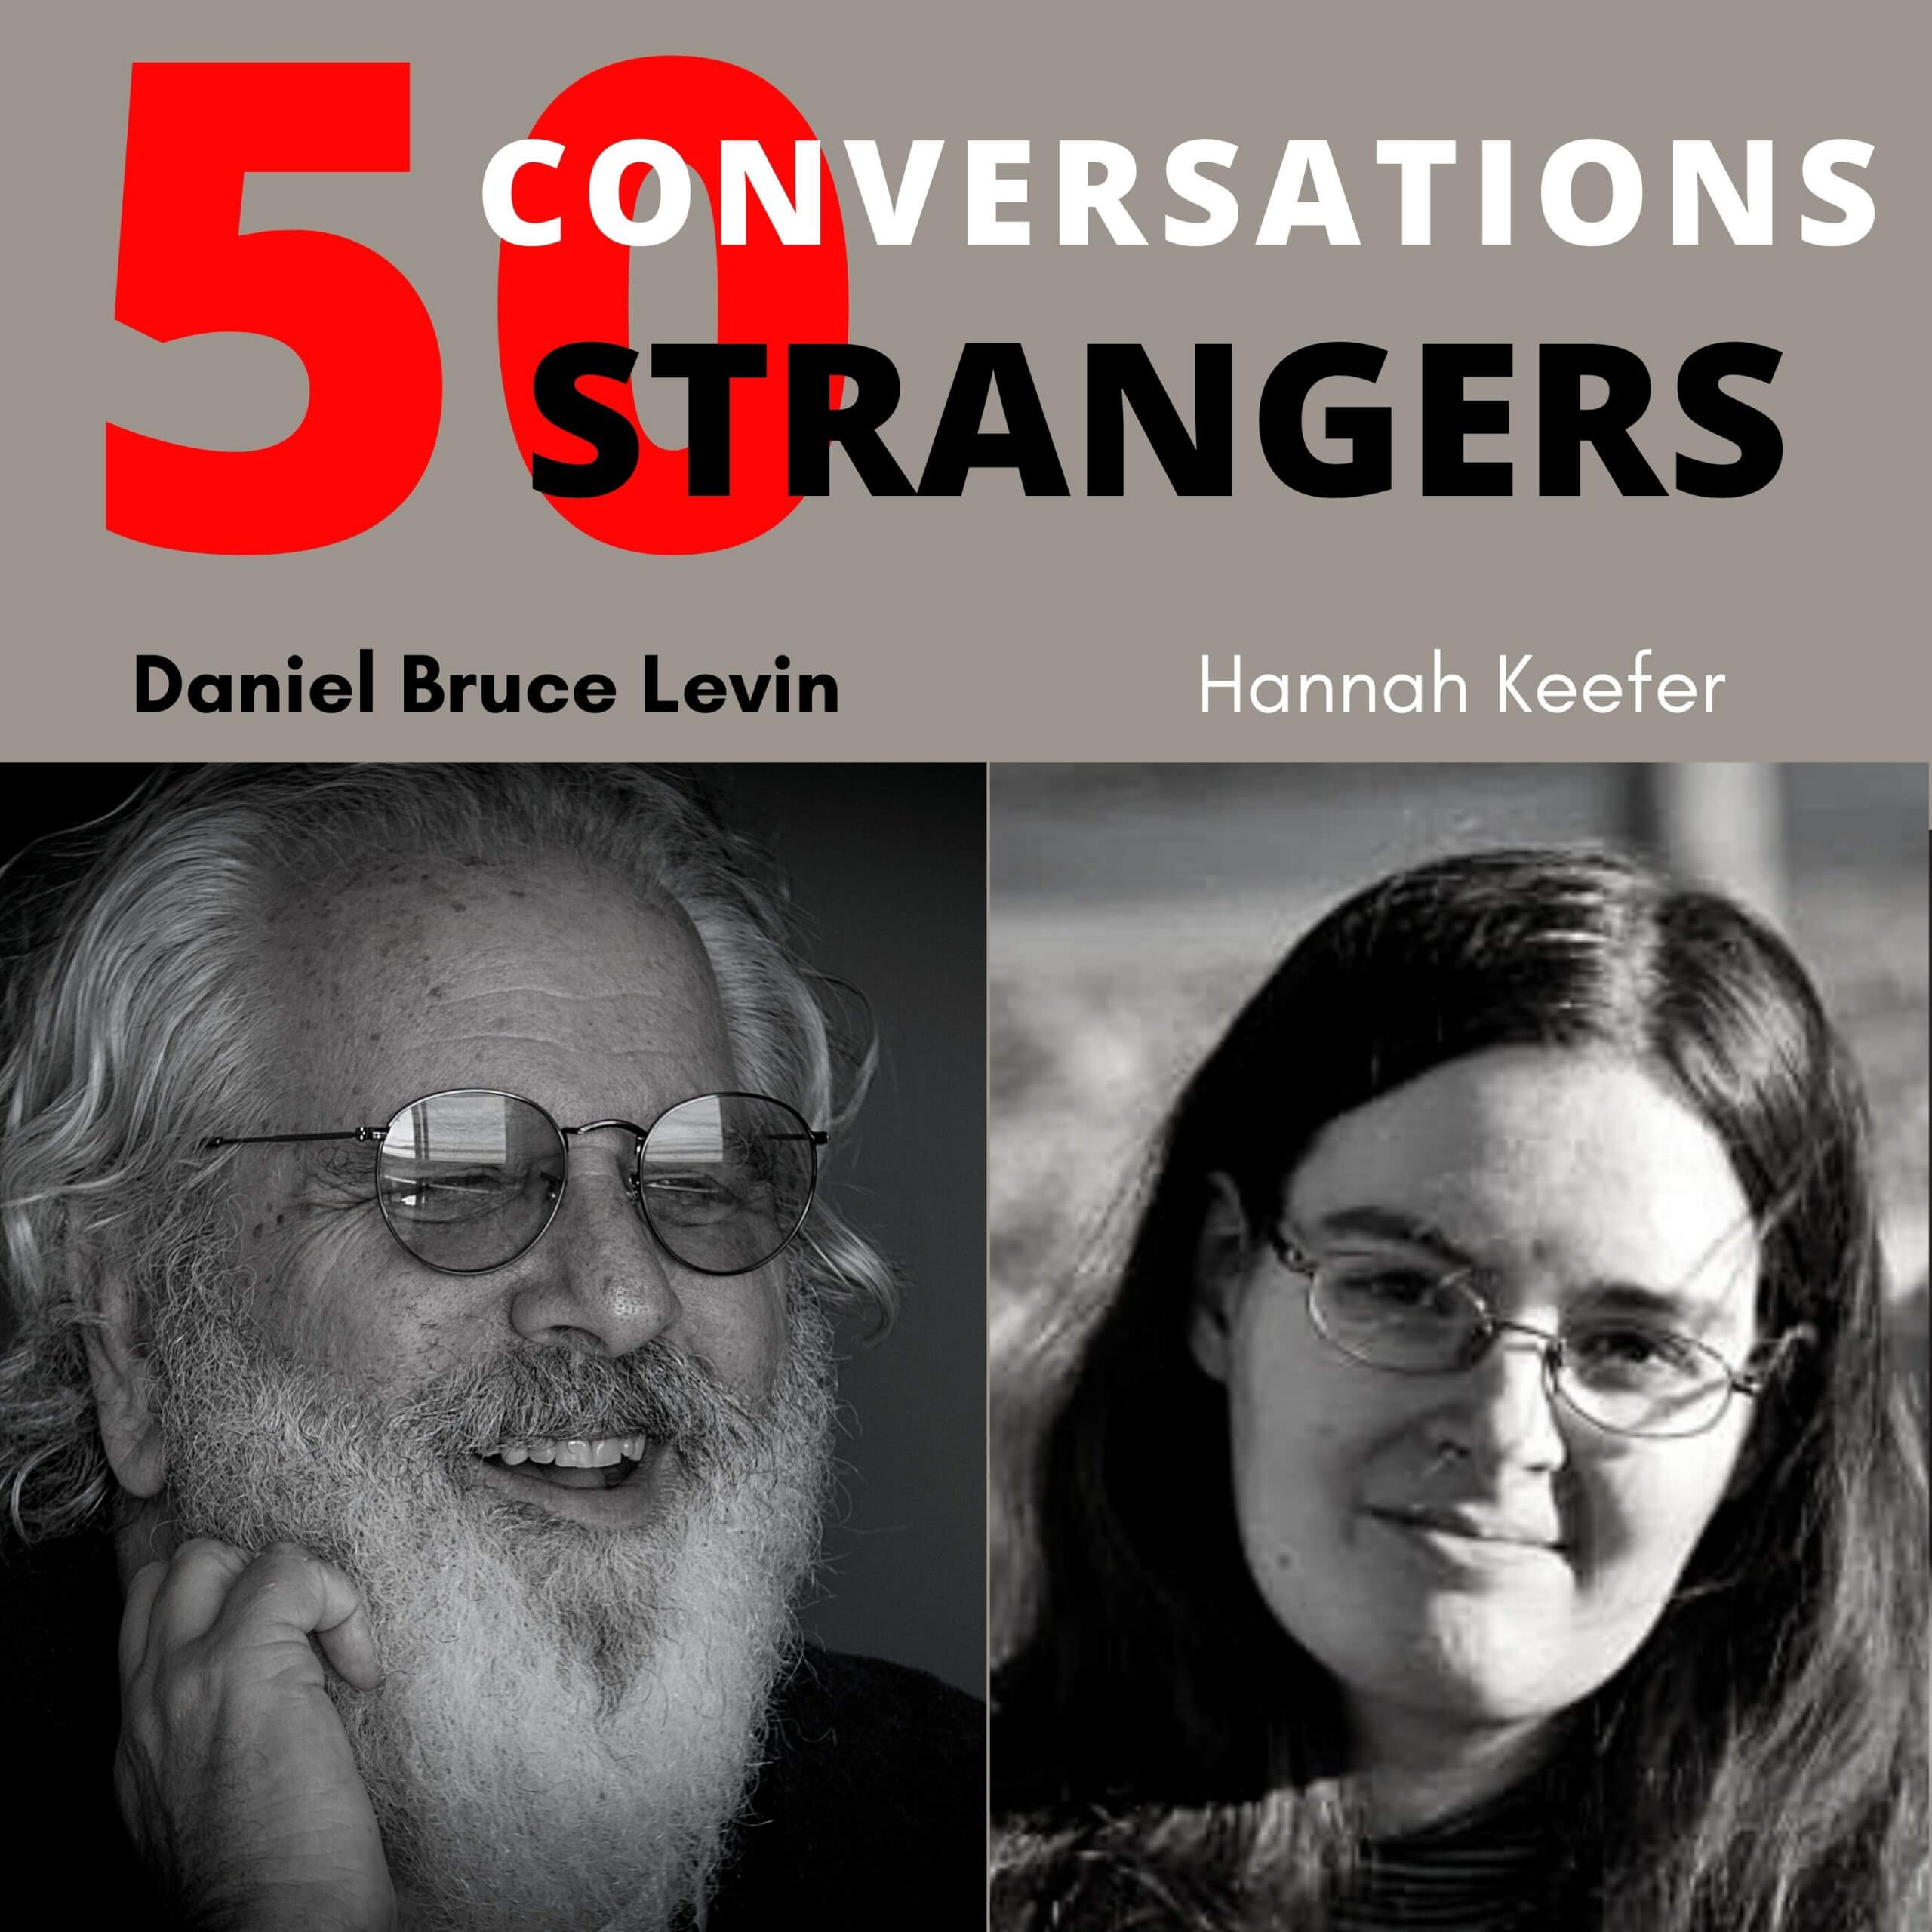 50 Conversations with 50 Strangers with Hannah Keefer